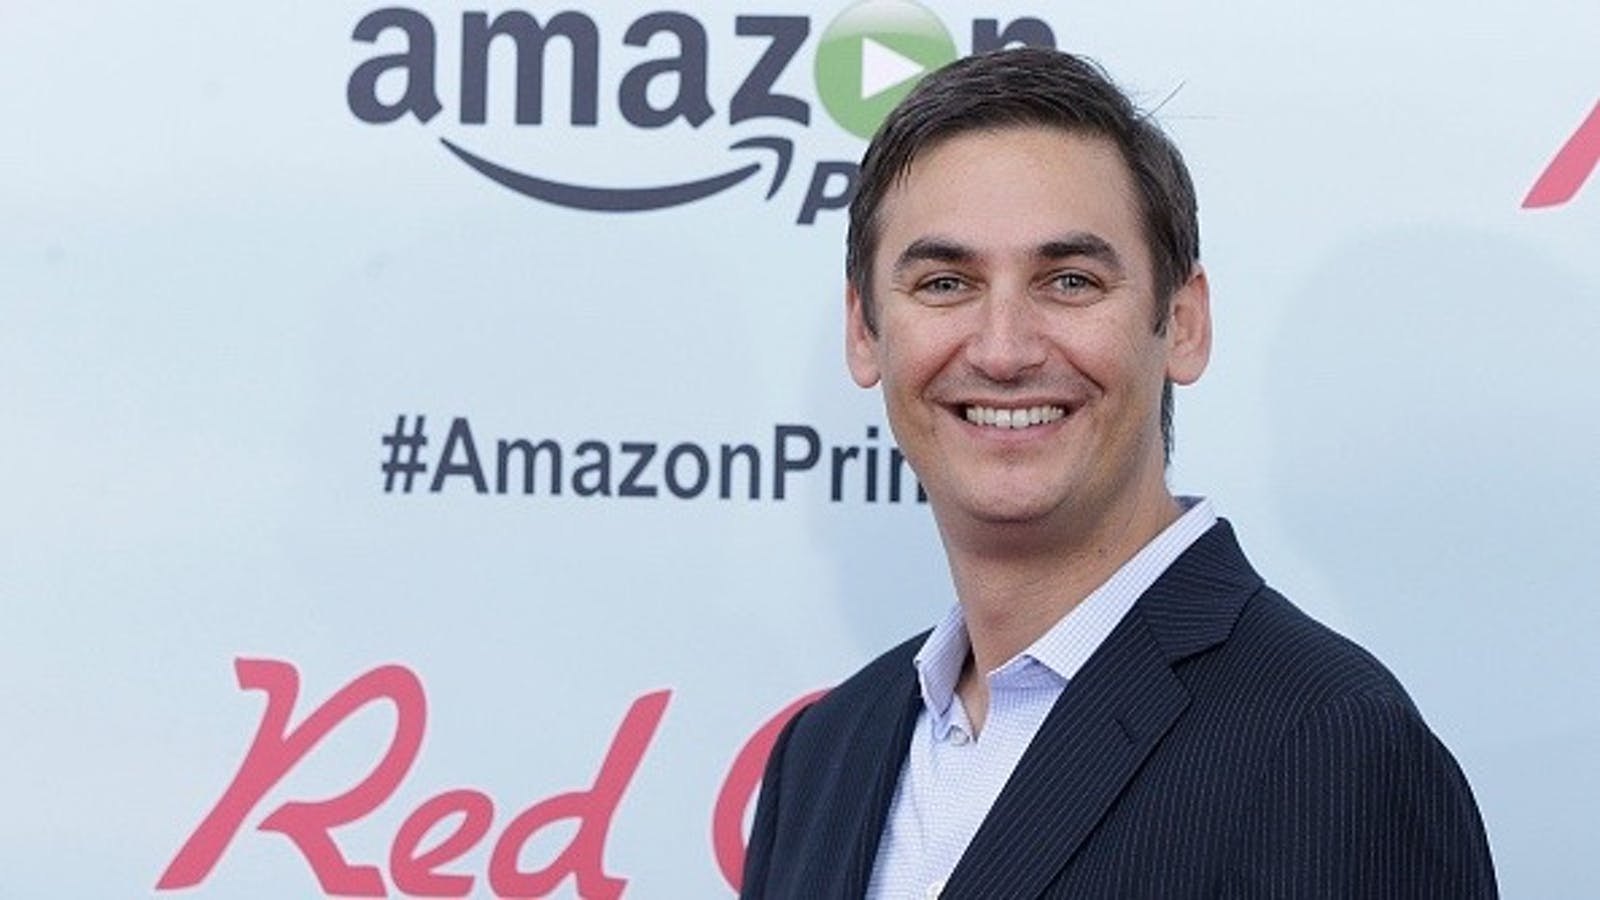 Amazon Video VP Michael Paull. Photo by Getty Images.